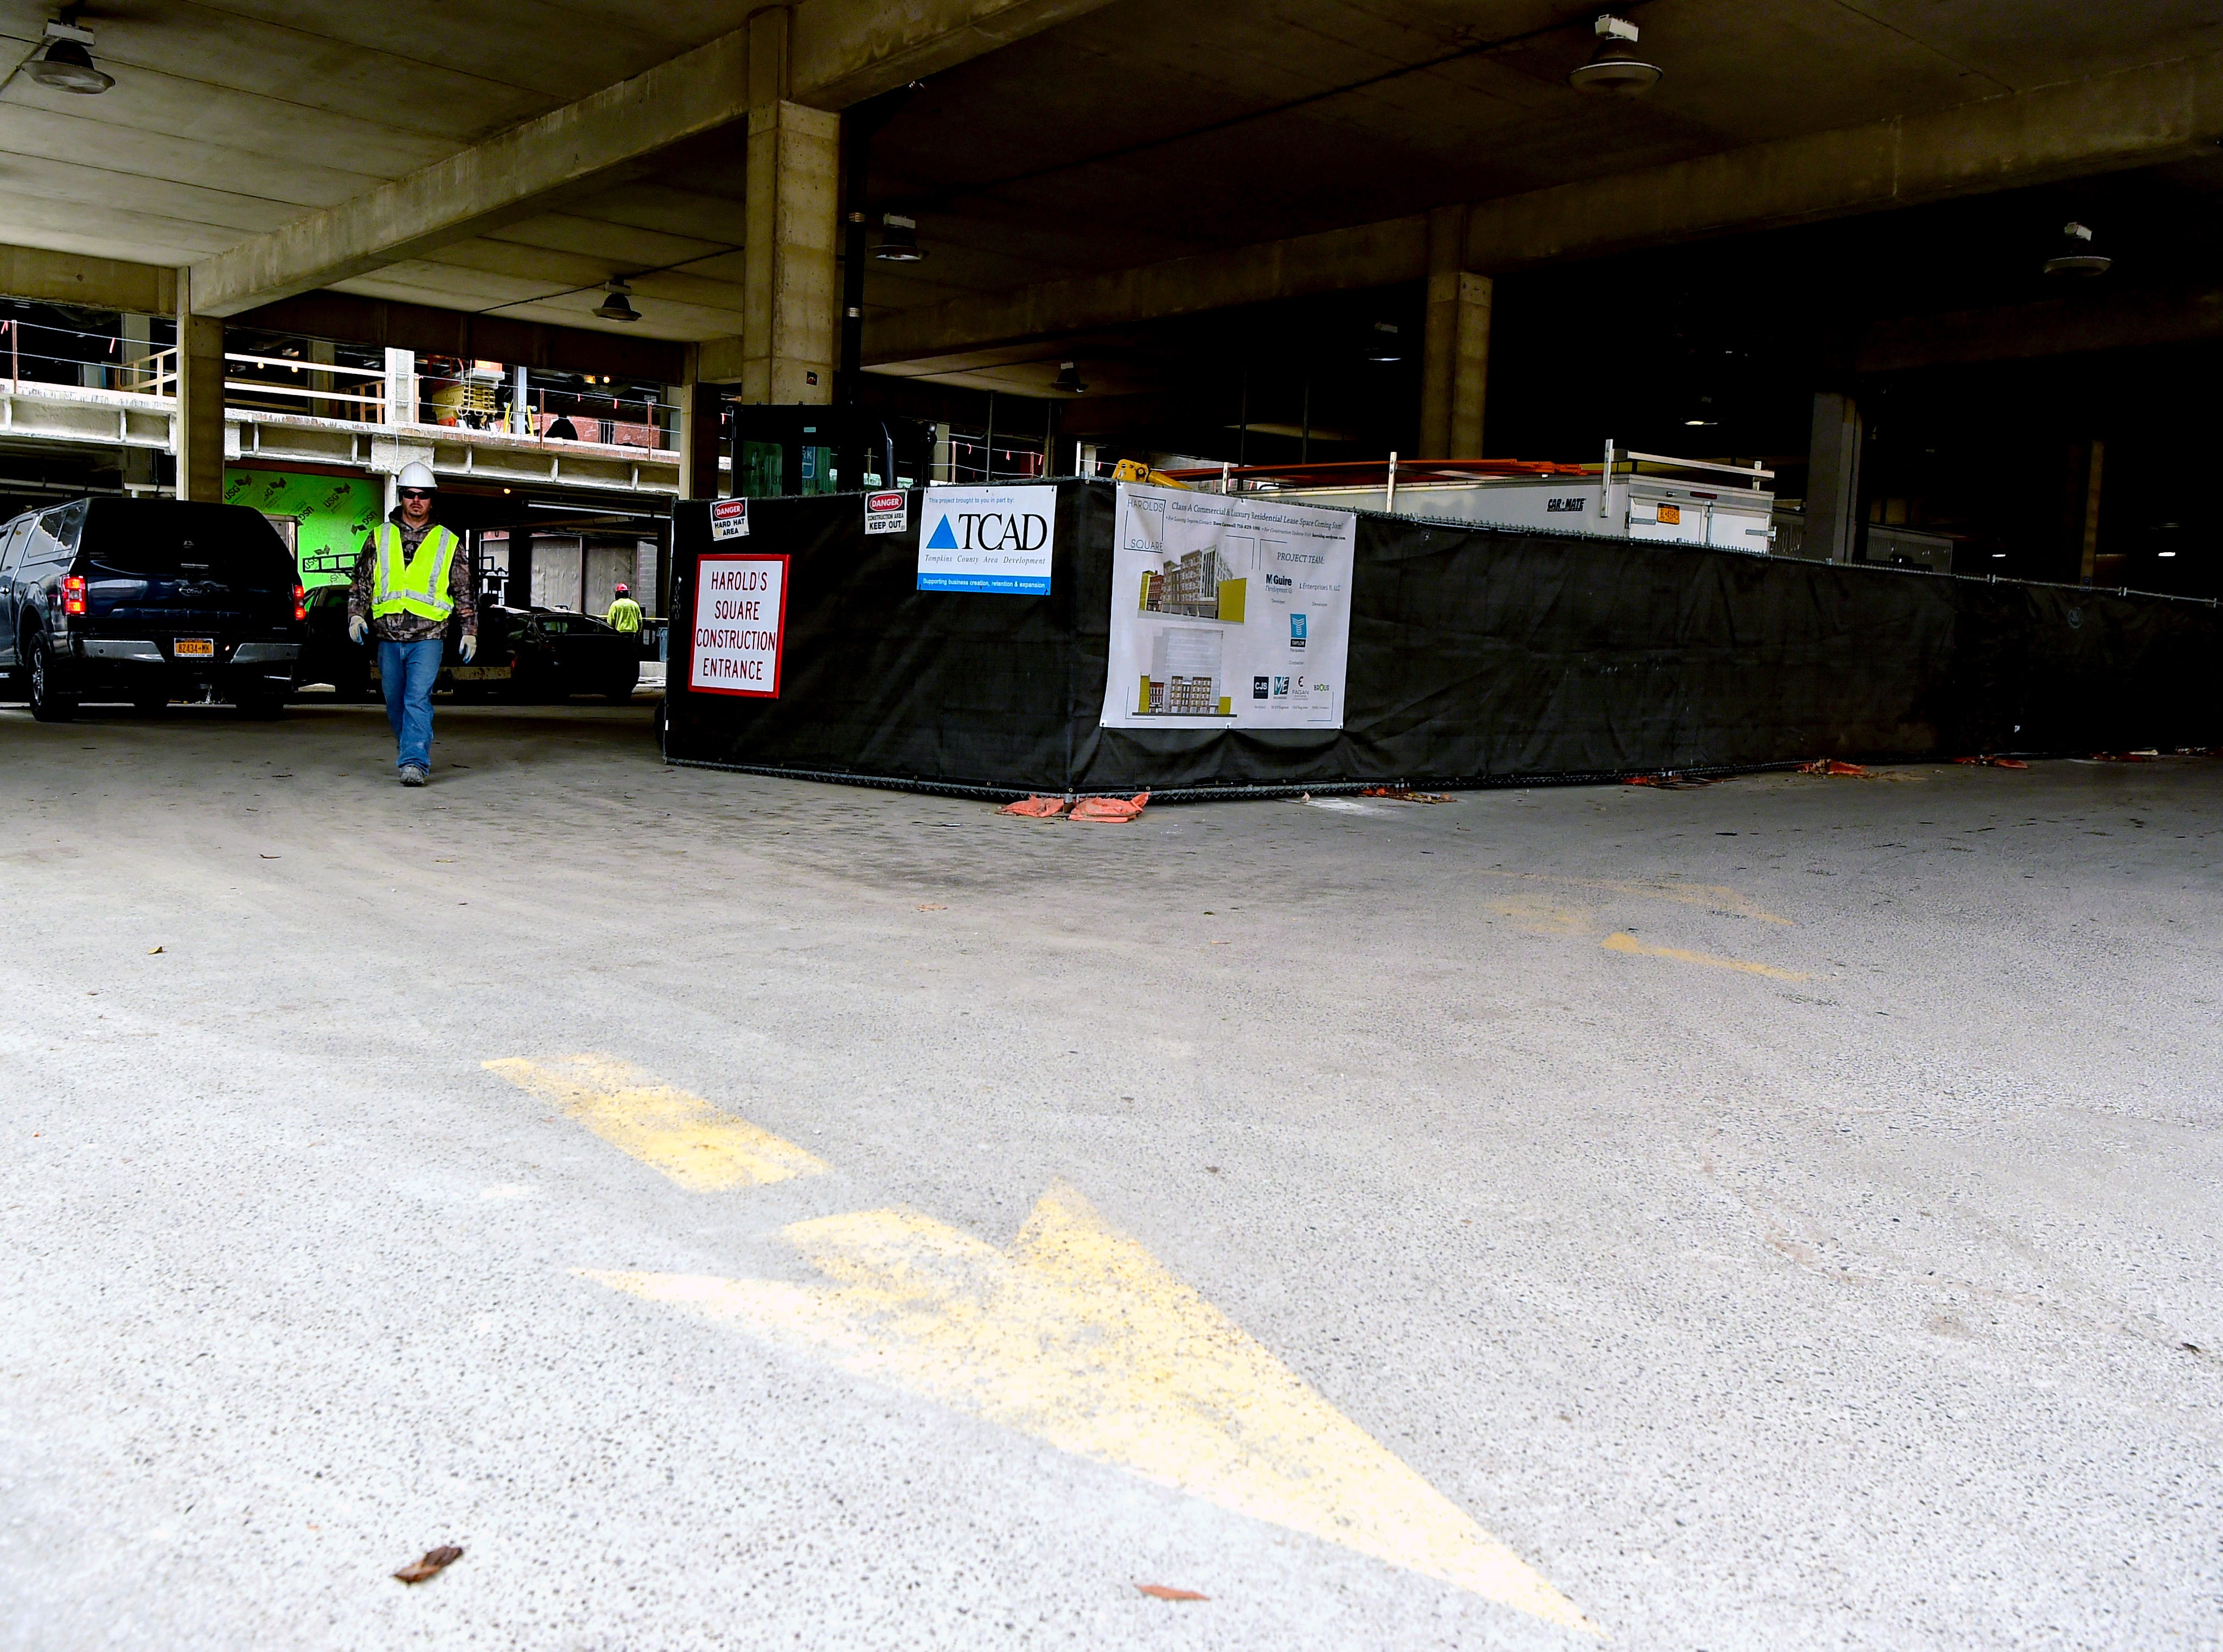 The first level of the Green Street Garage in downtown Ithaca. December 10, 2018.